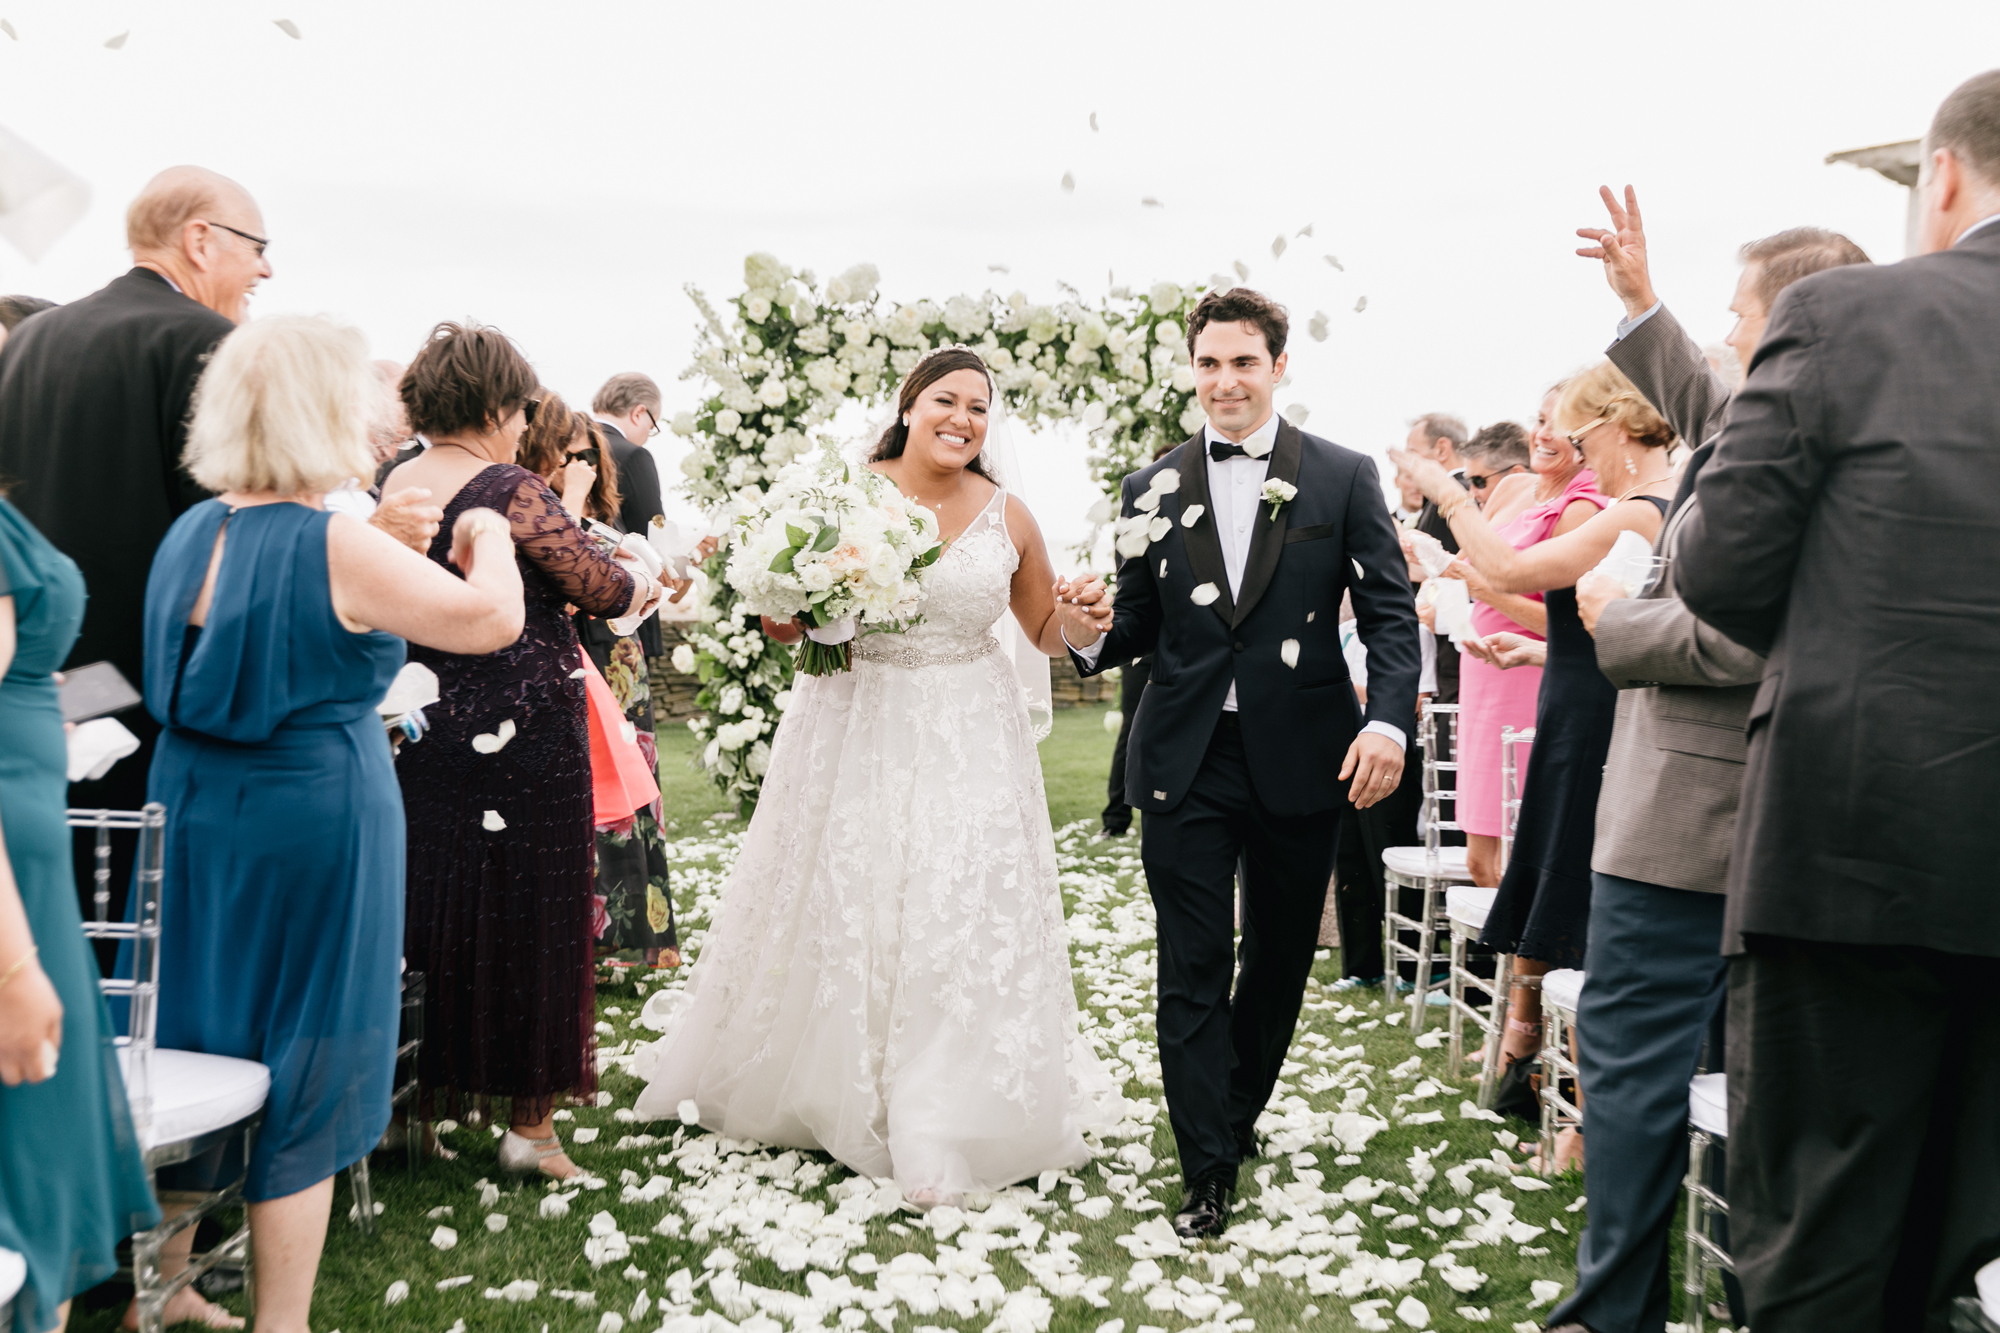 guests throwing white flower petals during wedding recessional